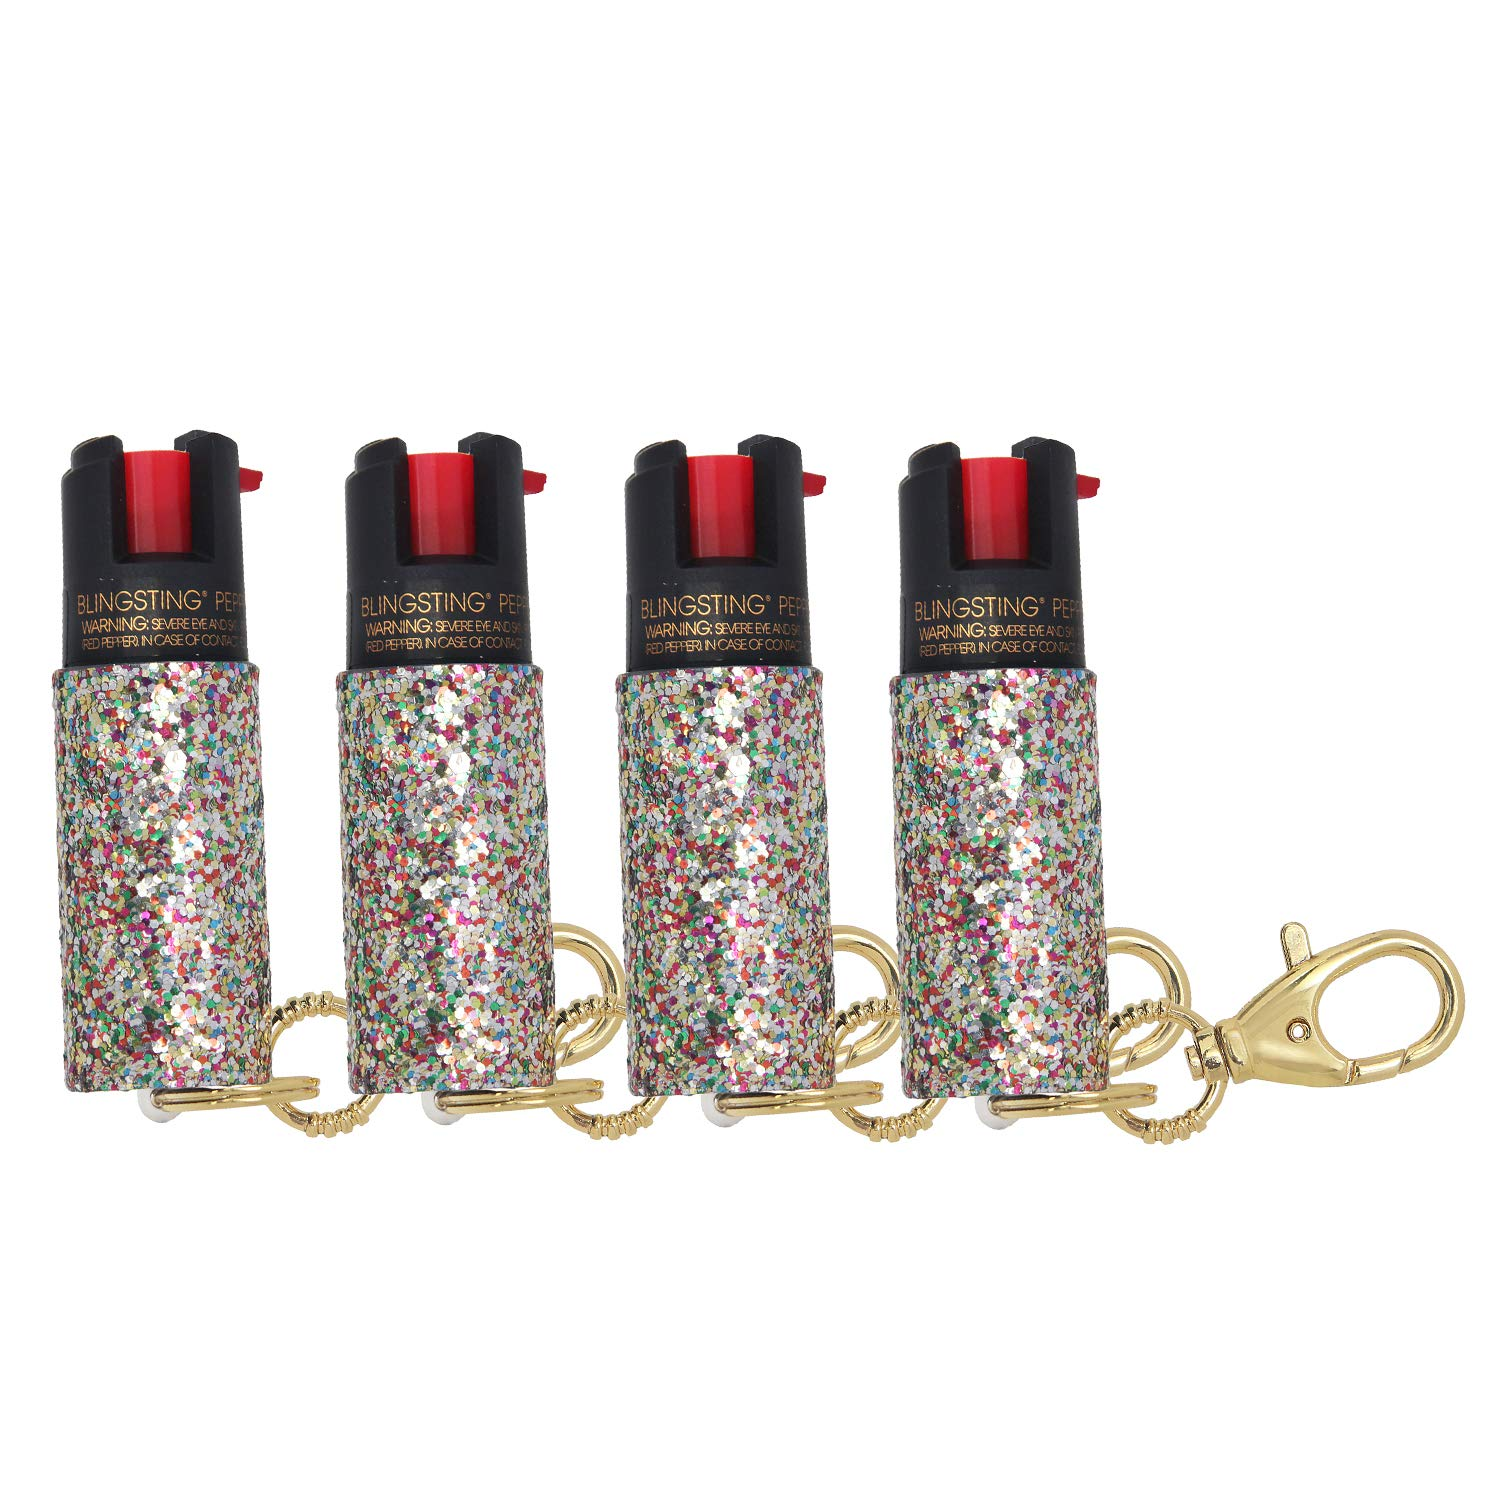 super-cute pepper spray Keychain for Women Professional Grade Maximum Strength OC Formula 1.4 Major Capsaicinoids 10-12 Ft Effective Range Accurate Stream Self-Defense Accessory Designed for Women by super-cute pepper spray